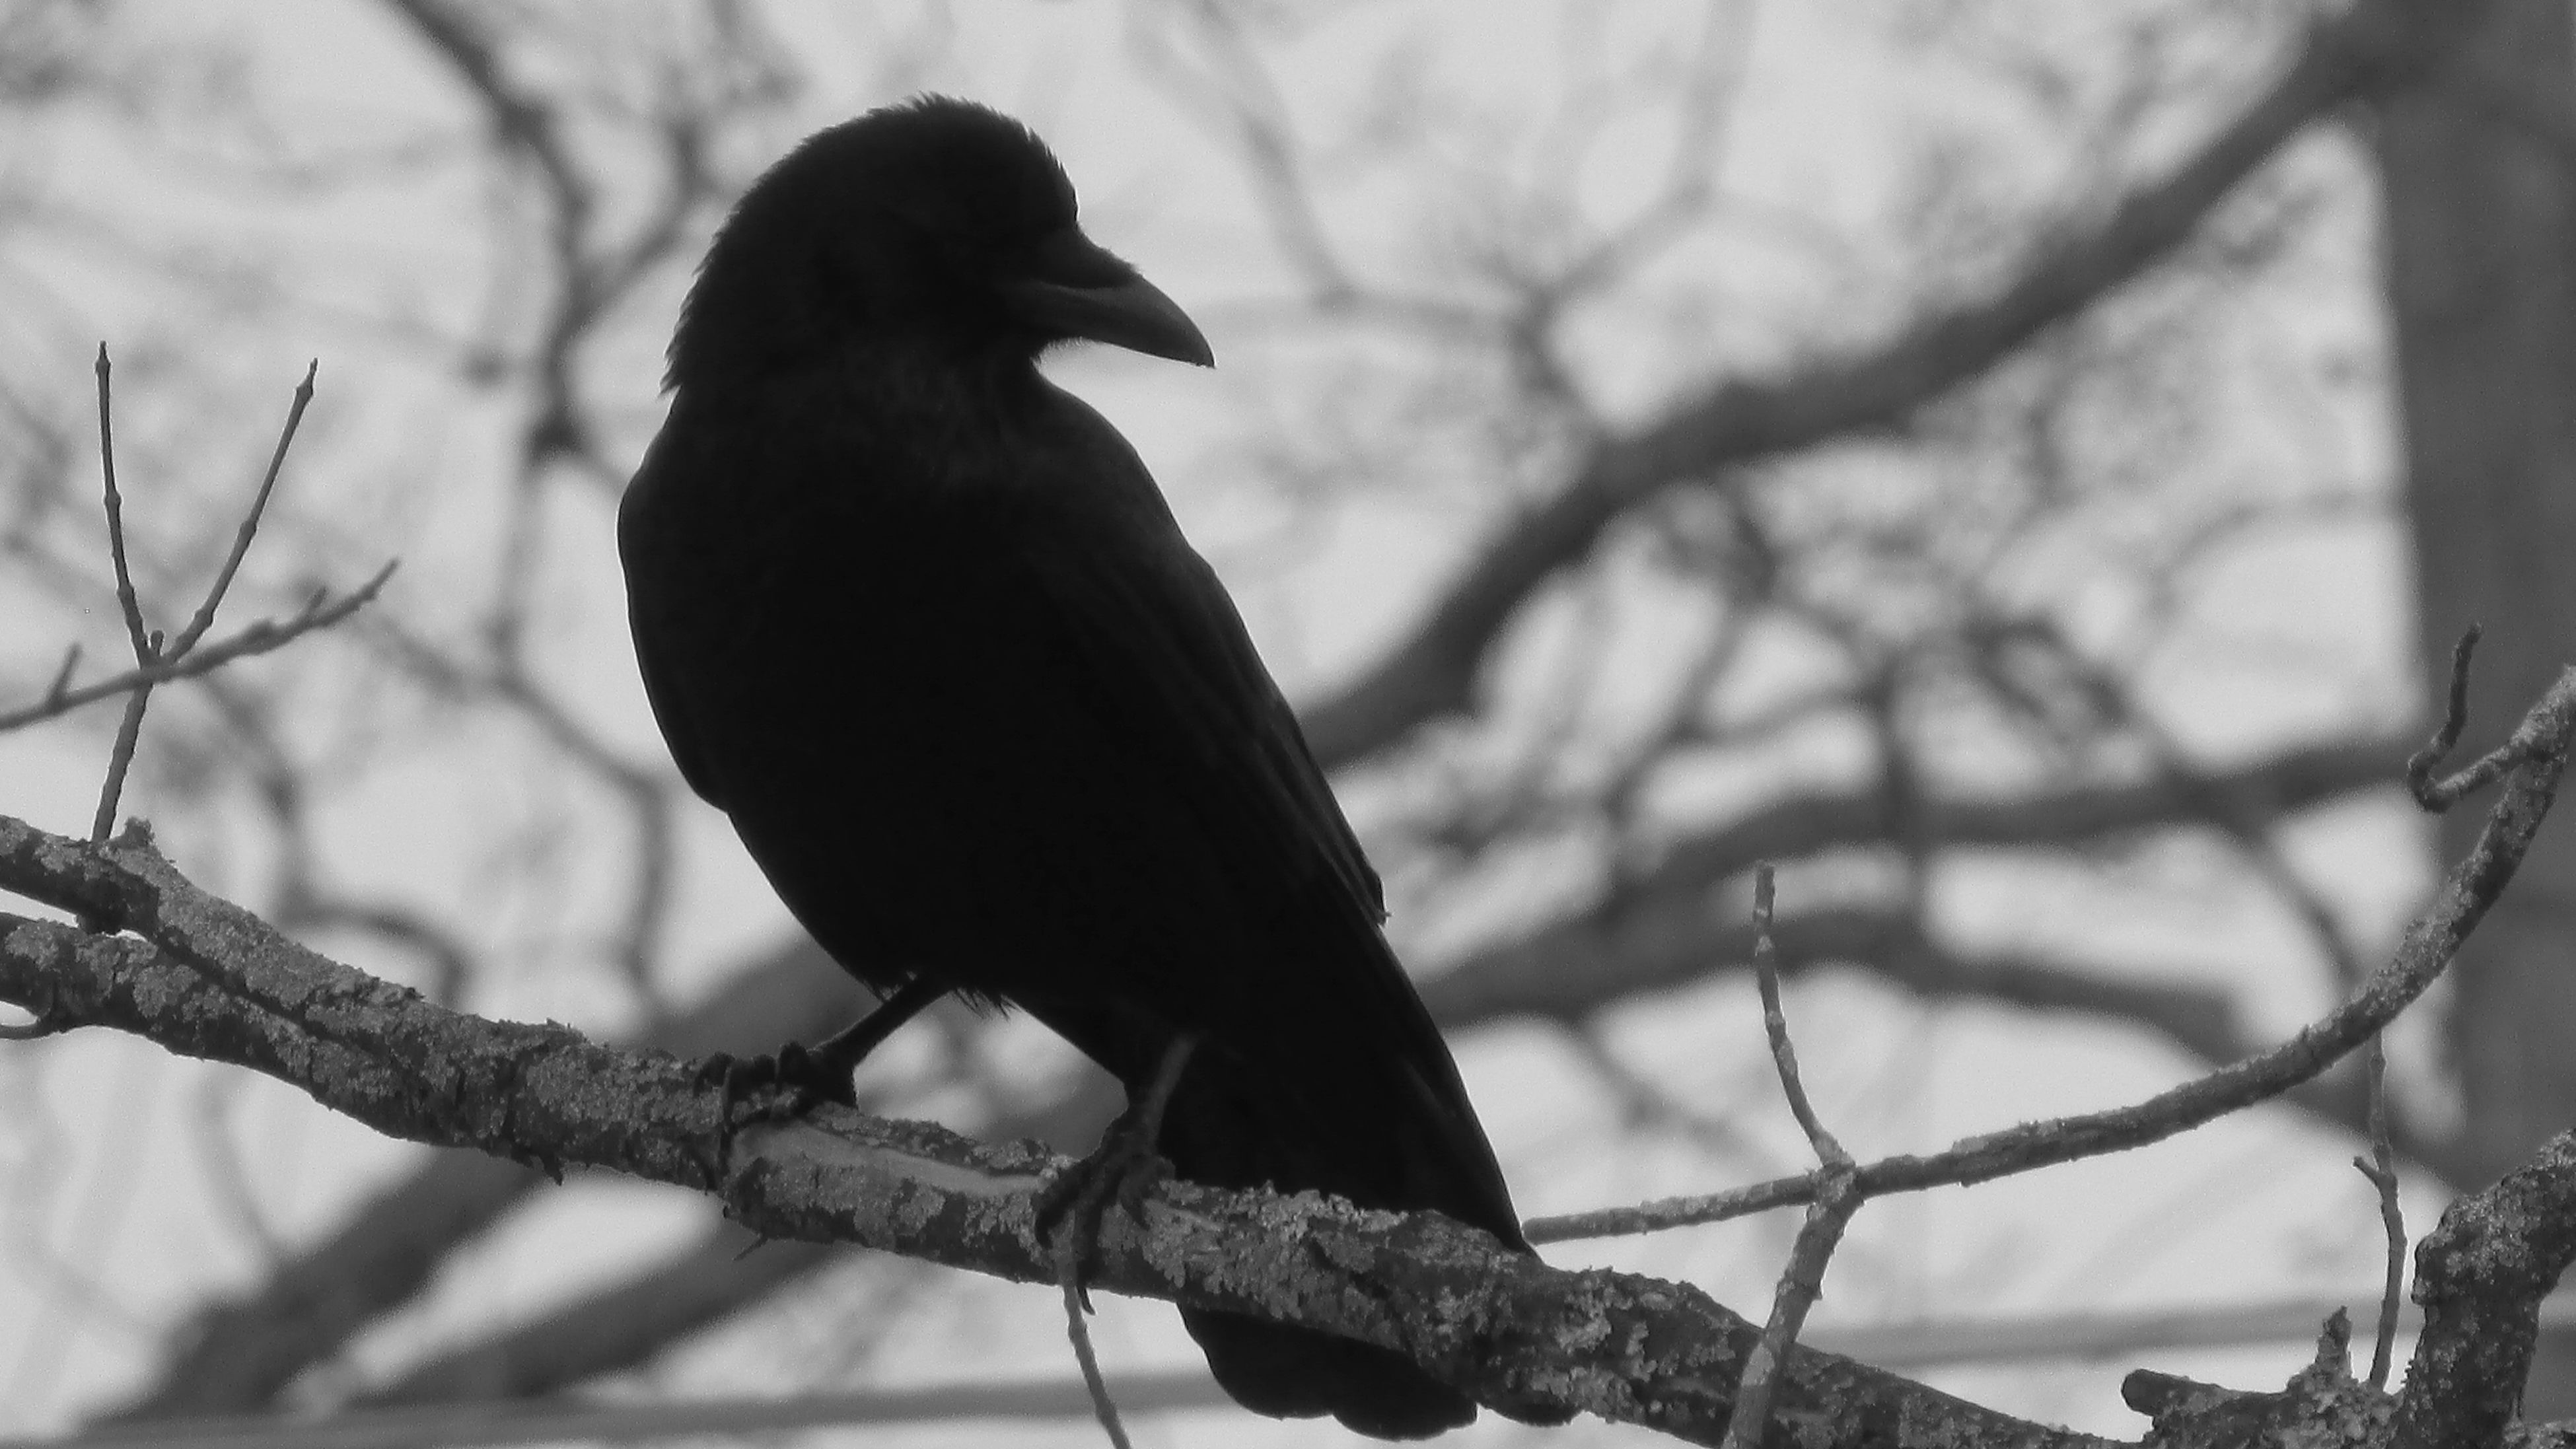 My Neighborhood Black And White Photography Been Hanging Around Lately Birdwatching Just Chilling Cadillac Michigan